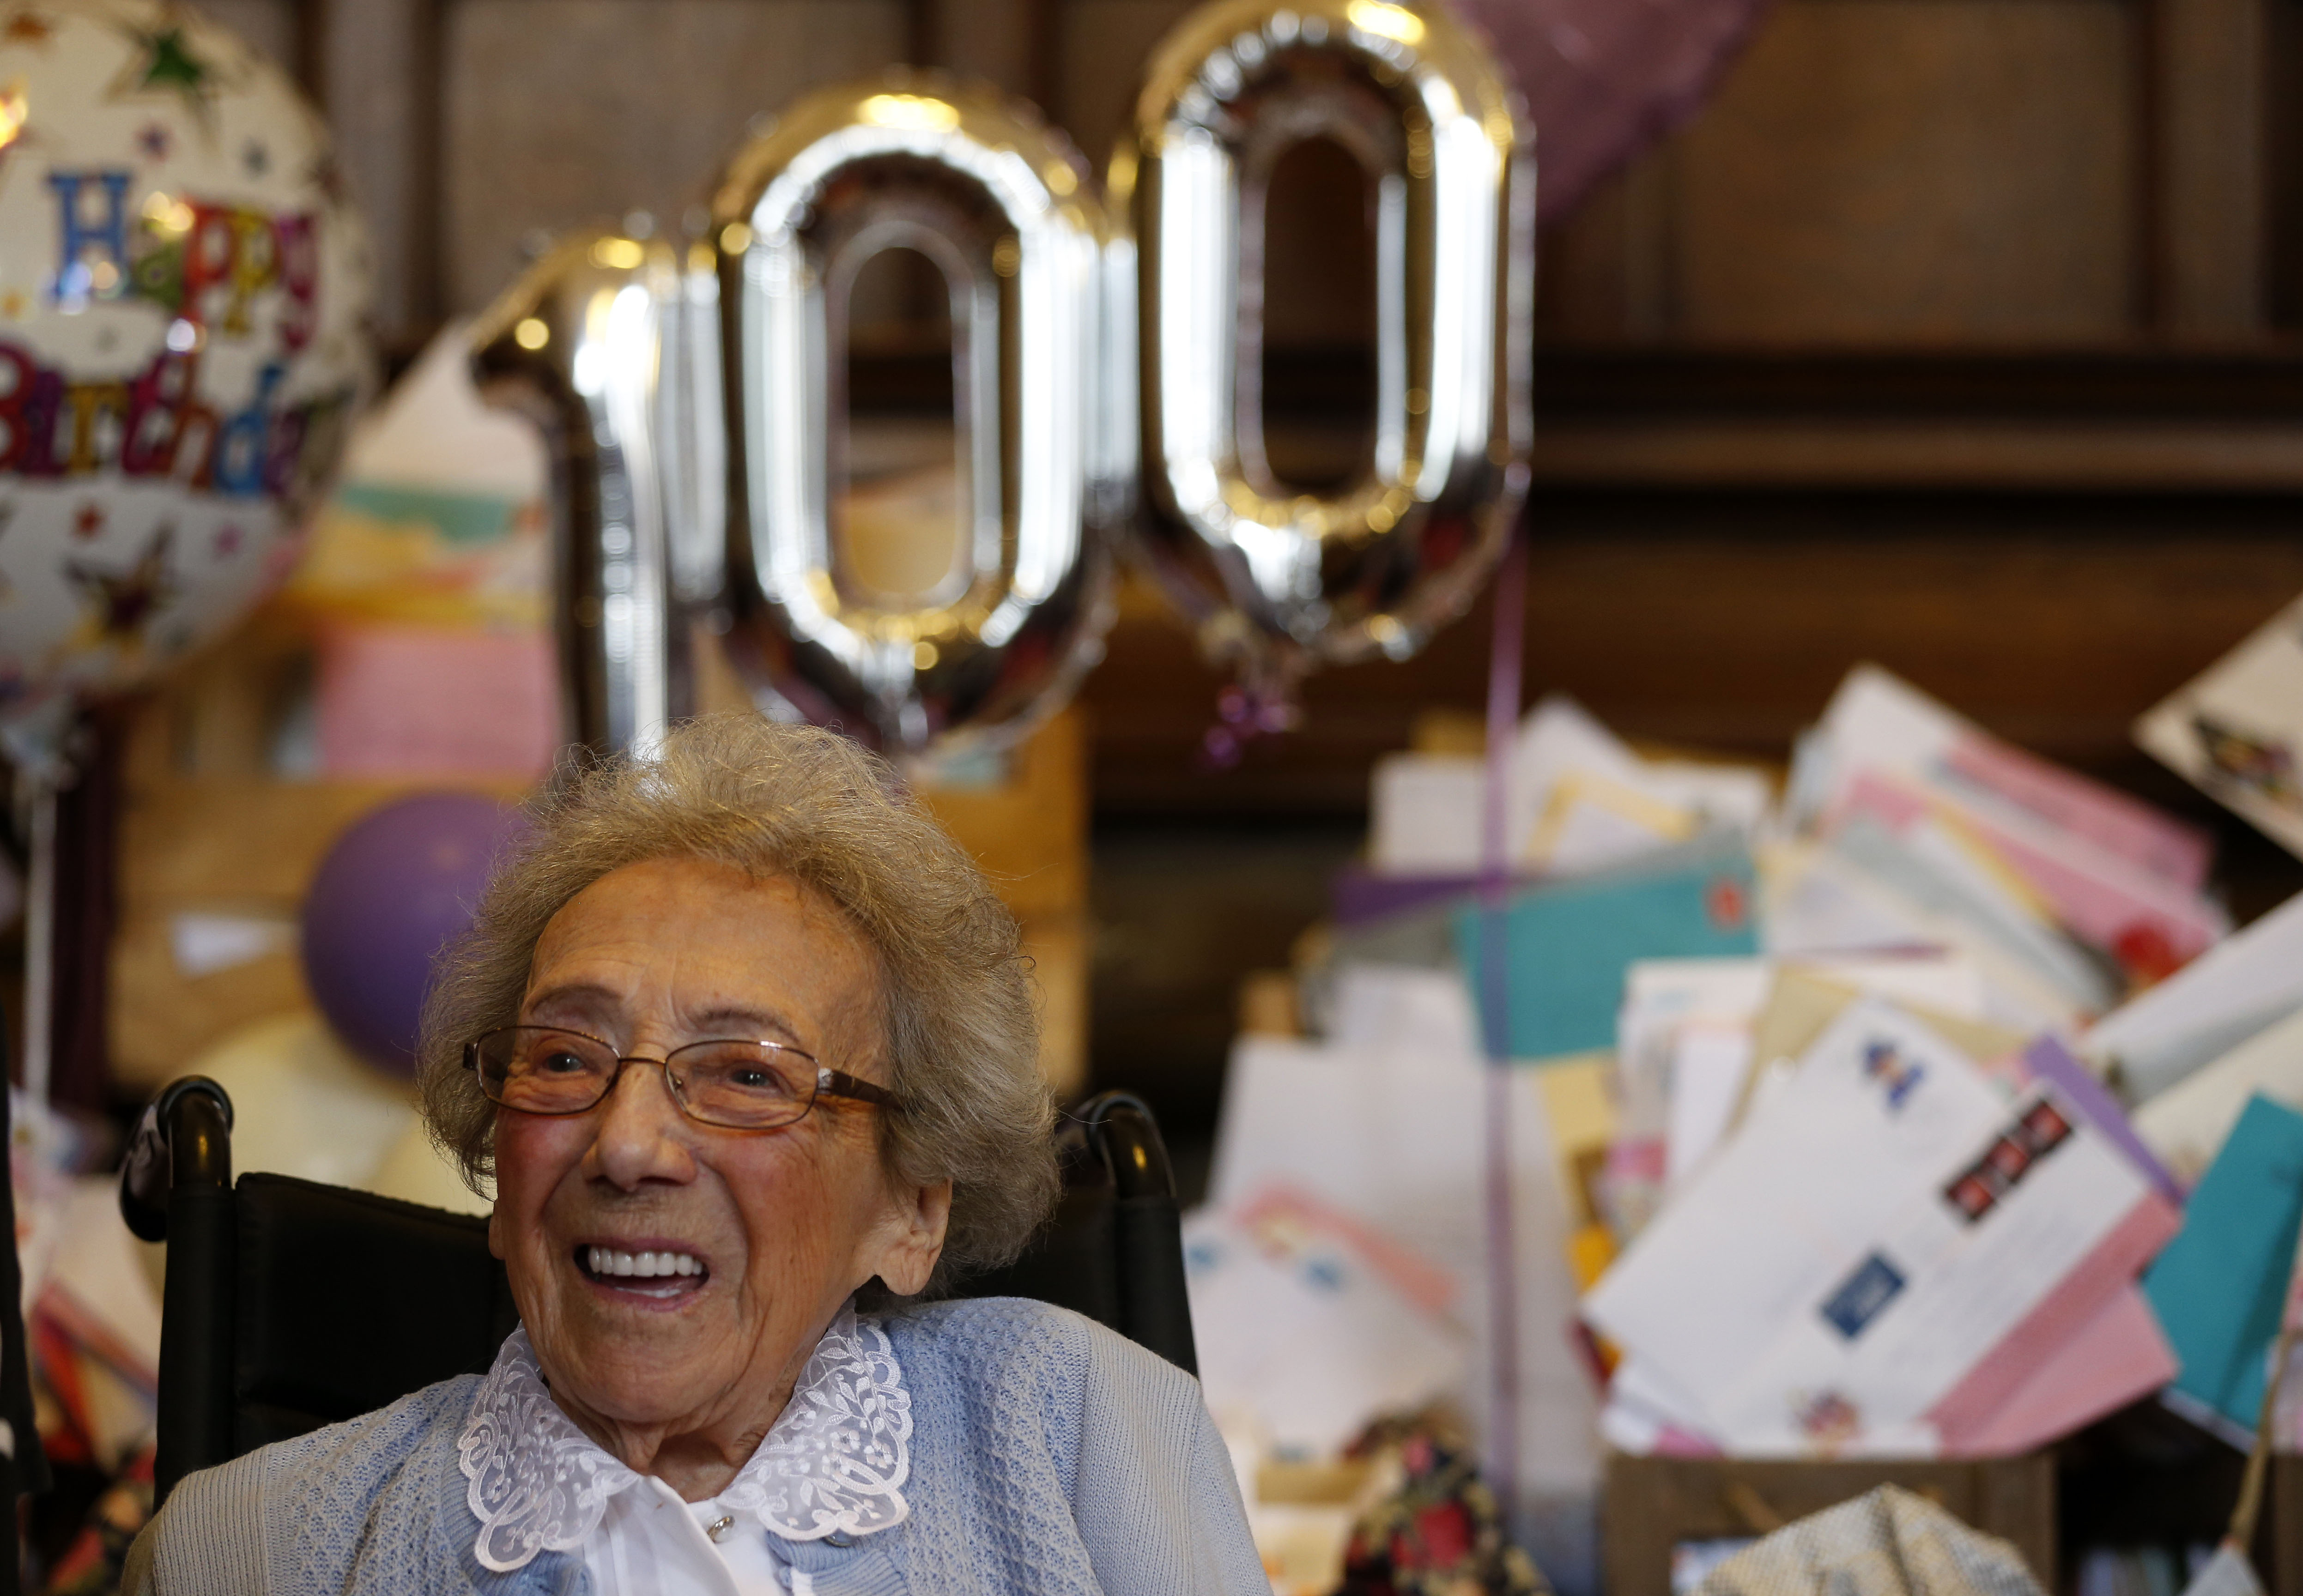 Winnie Blagden, who will become a centenarian at the end of the month, during a surprise party at Sheffield Town Hall, Sheffield, England.